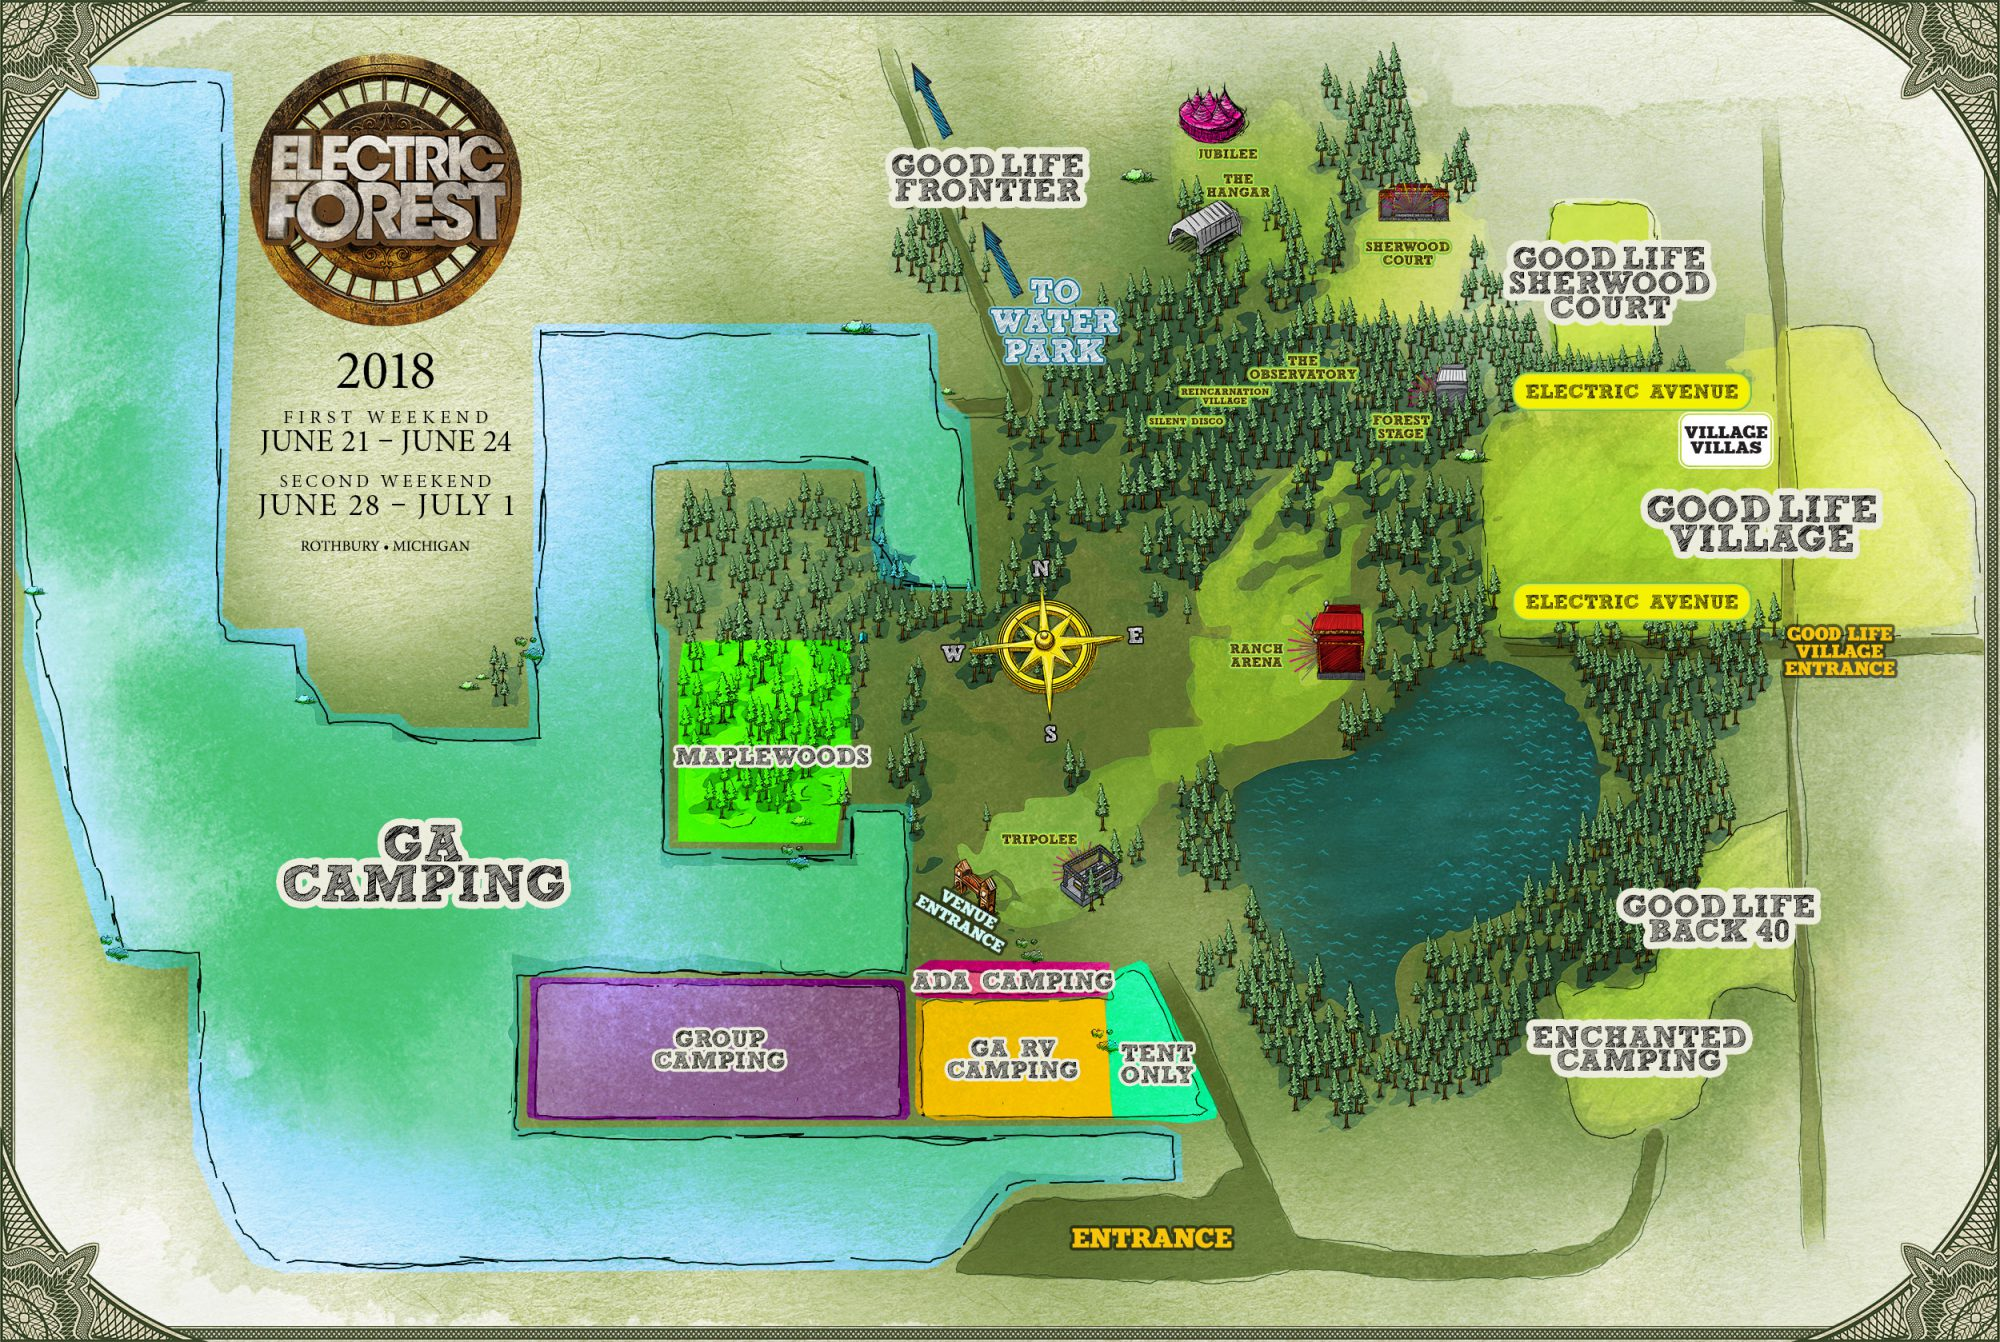 Electric Forest Map Electric Forest 2018 Camping Map | EDM Identity